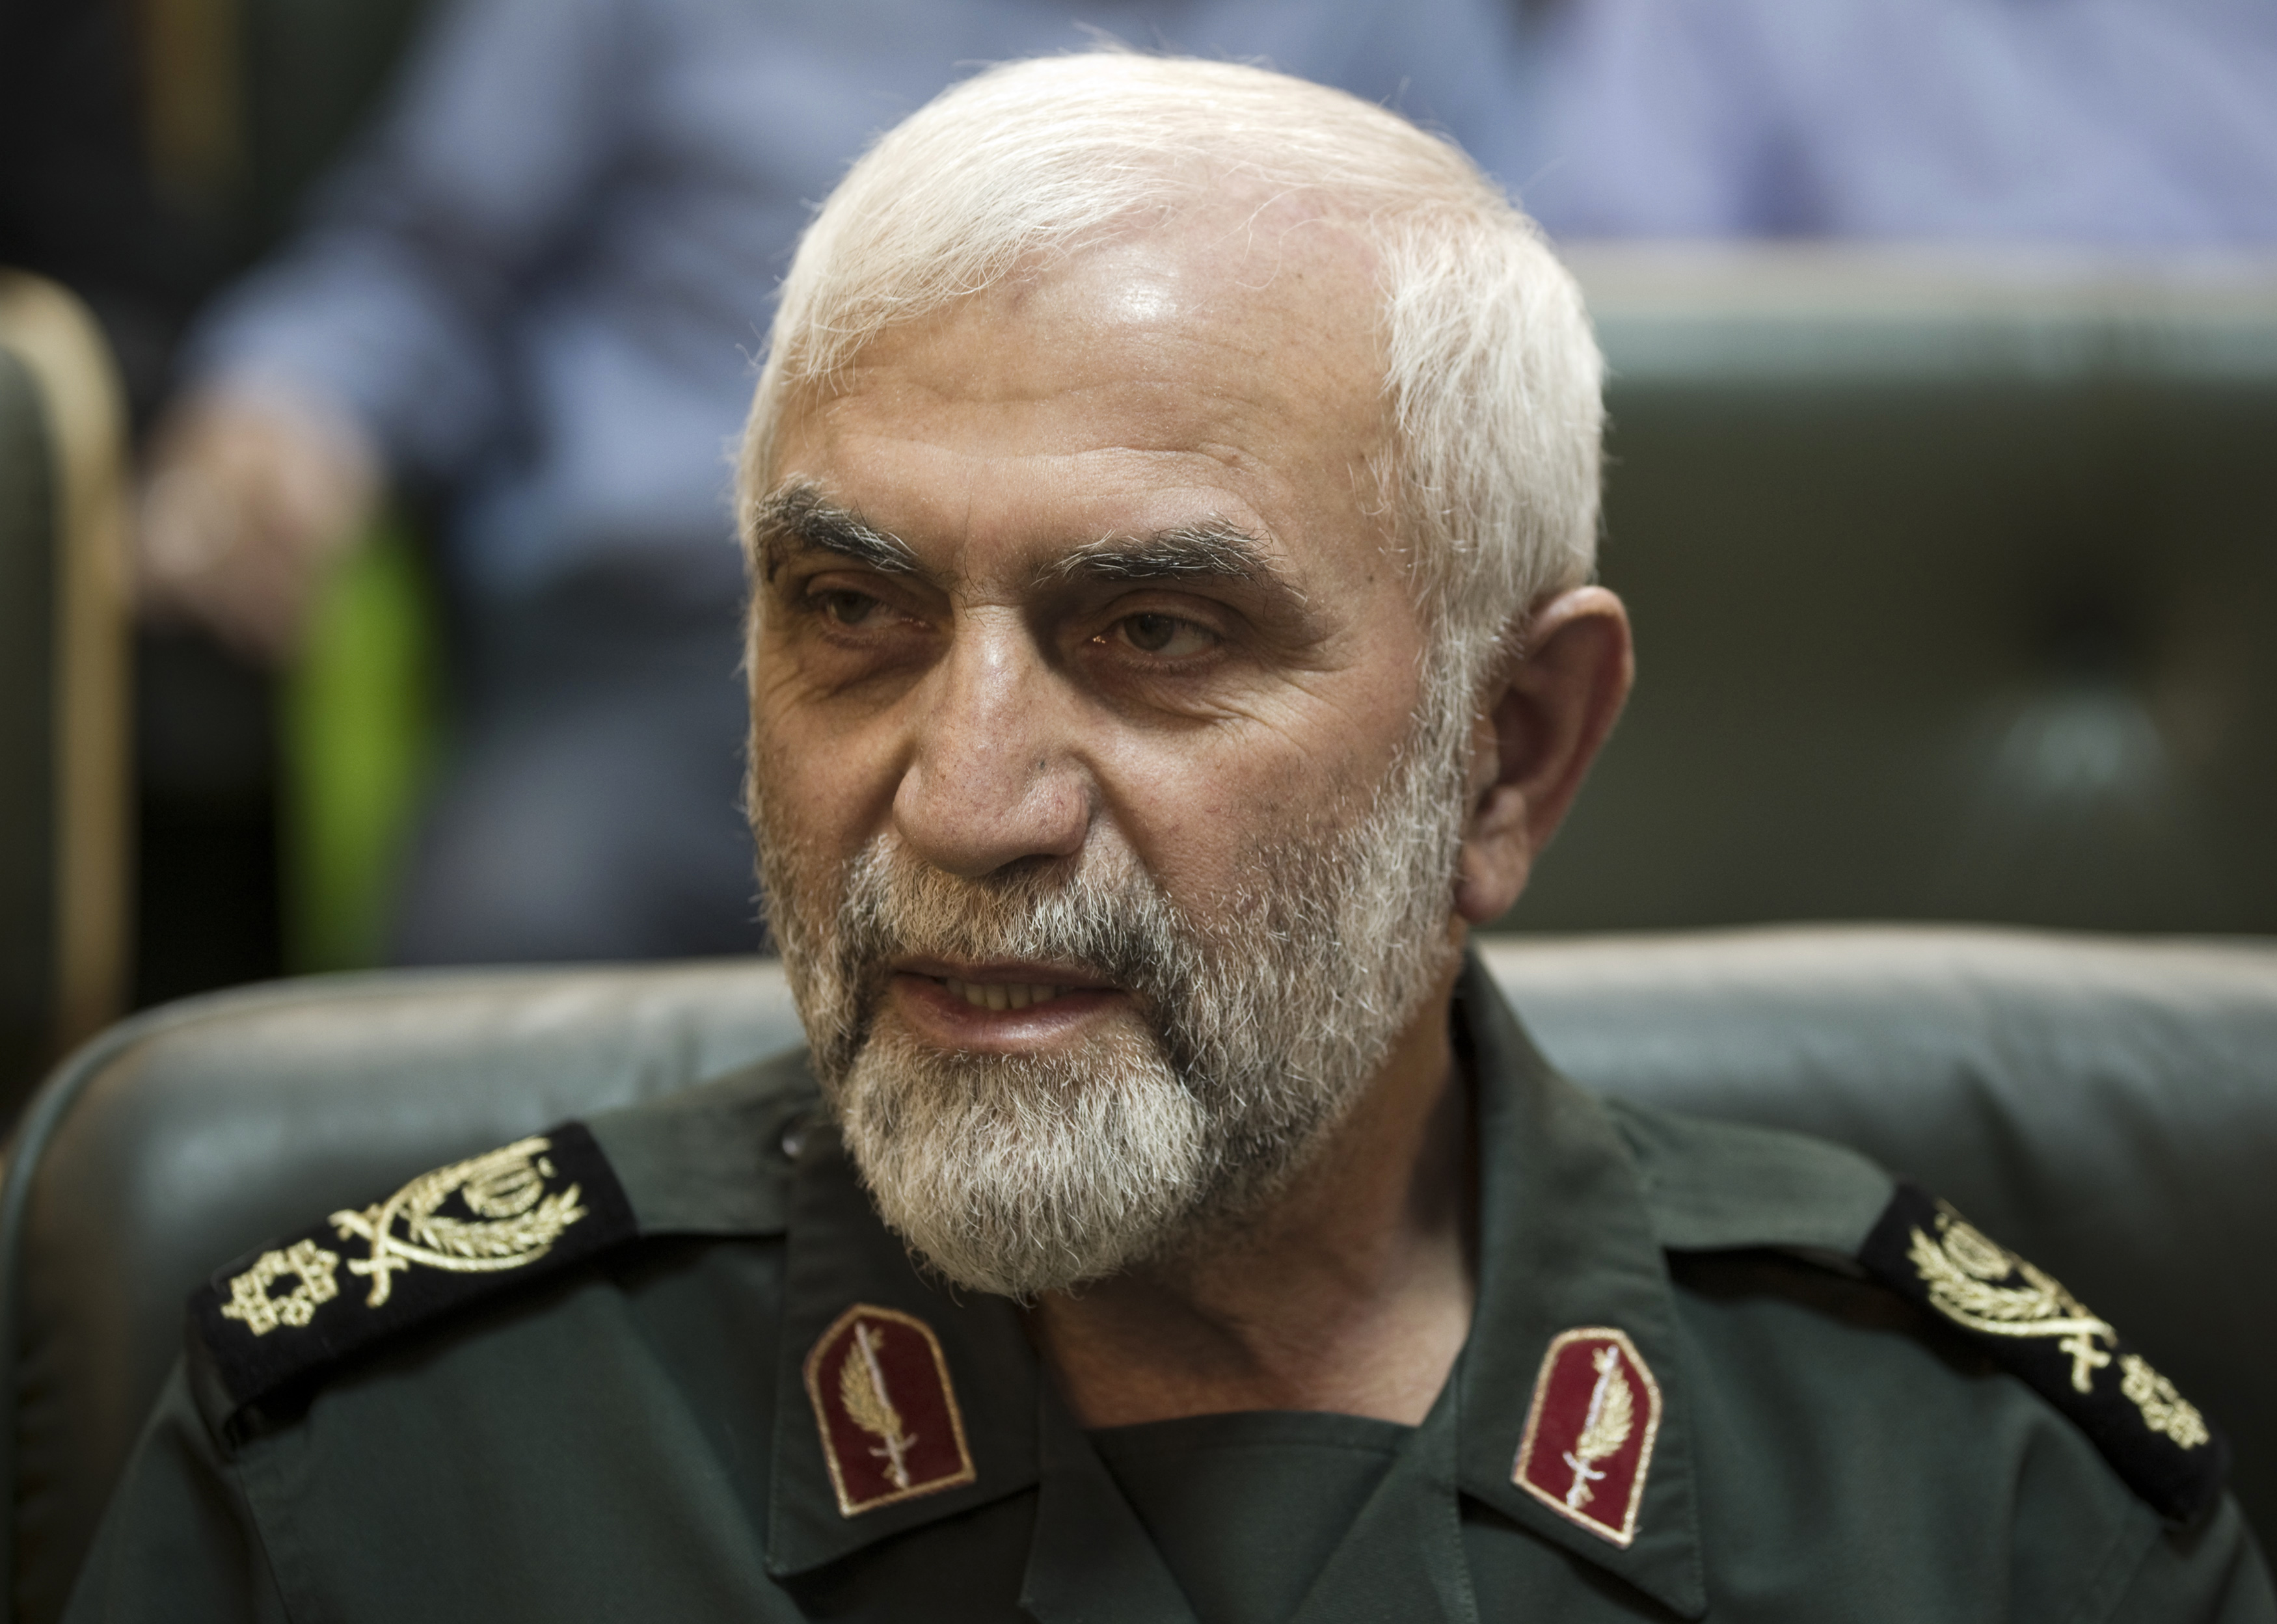 Head of the Mohammad Rasulallah Revolutionary guard base, Hossein Hamedani, attends a conference to mark the martyrs of terrorism in Tehran on Sept. 6, 2011.